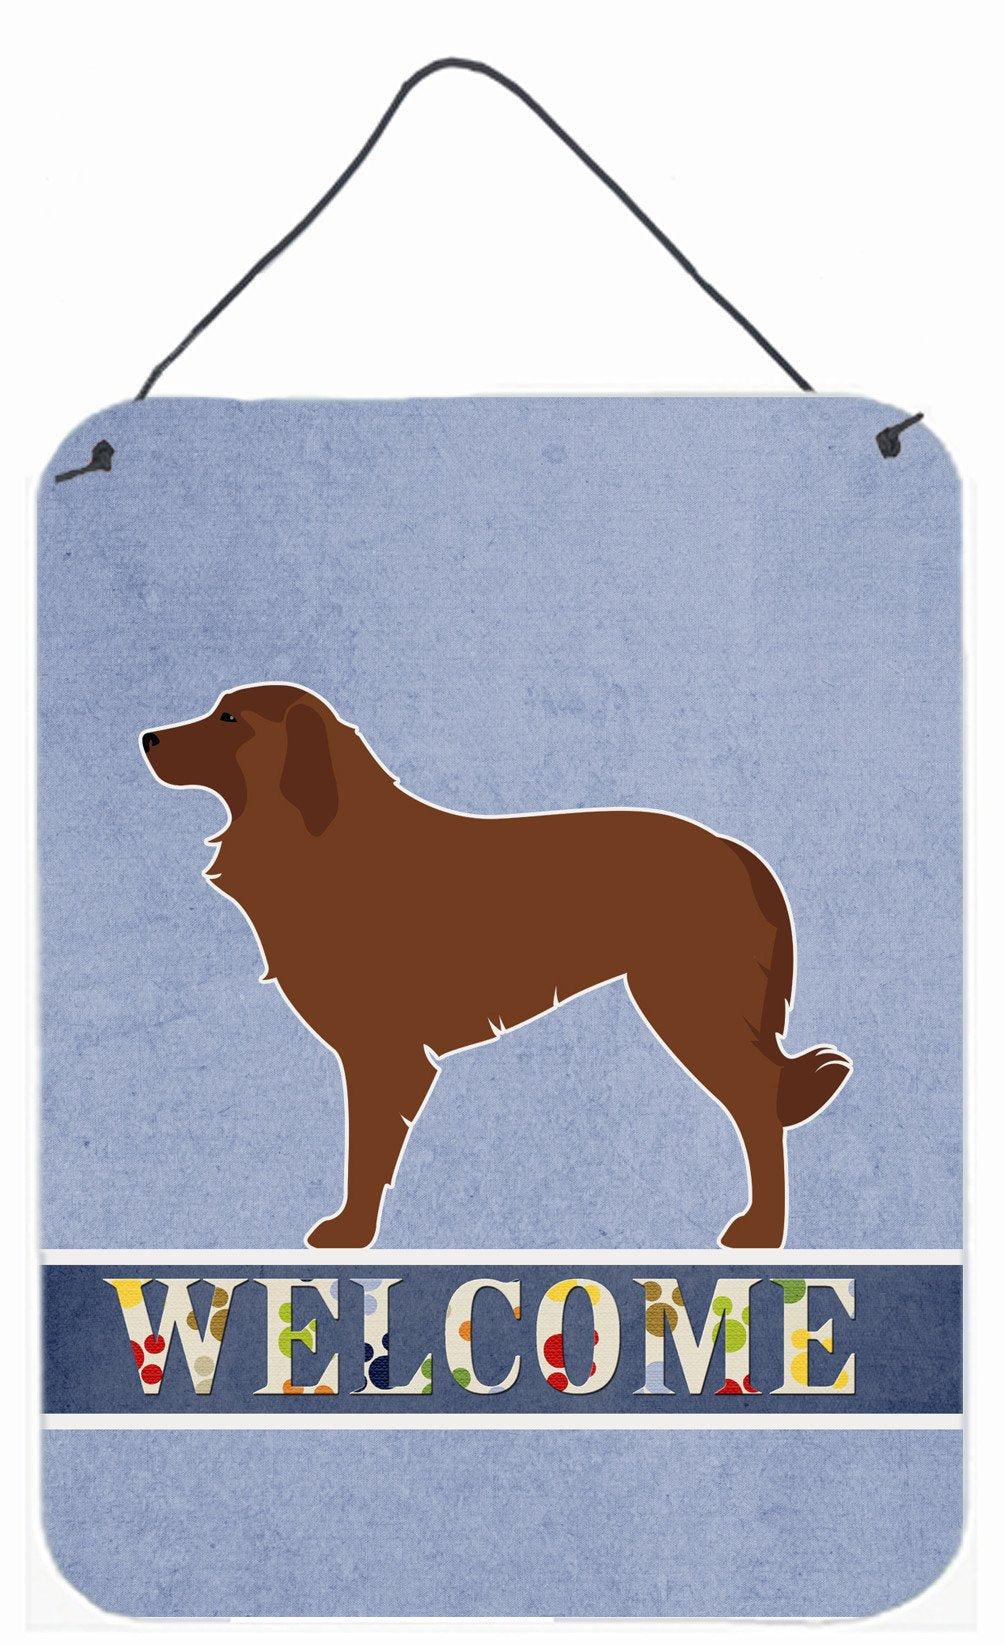 Portuguese Sheepdog Dog Welcome Wall or Door Hanging Prints BB5535DS1216 by Caroline's Treasures